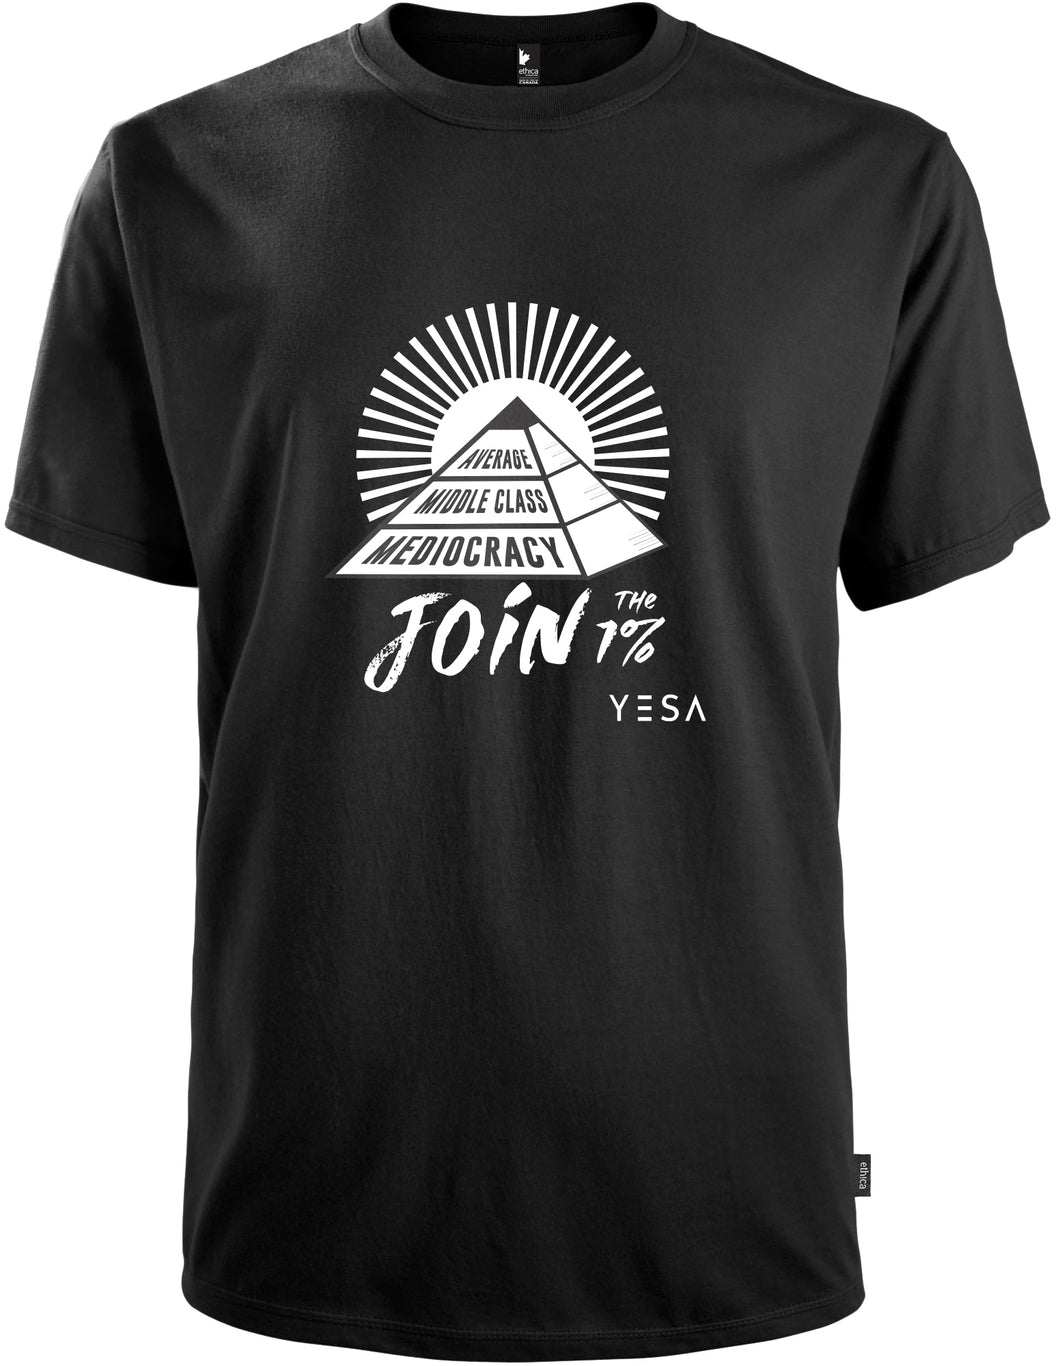 Join The 1%, Men's Tee